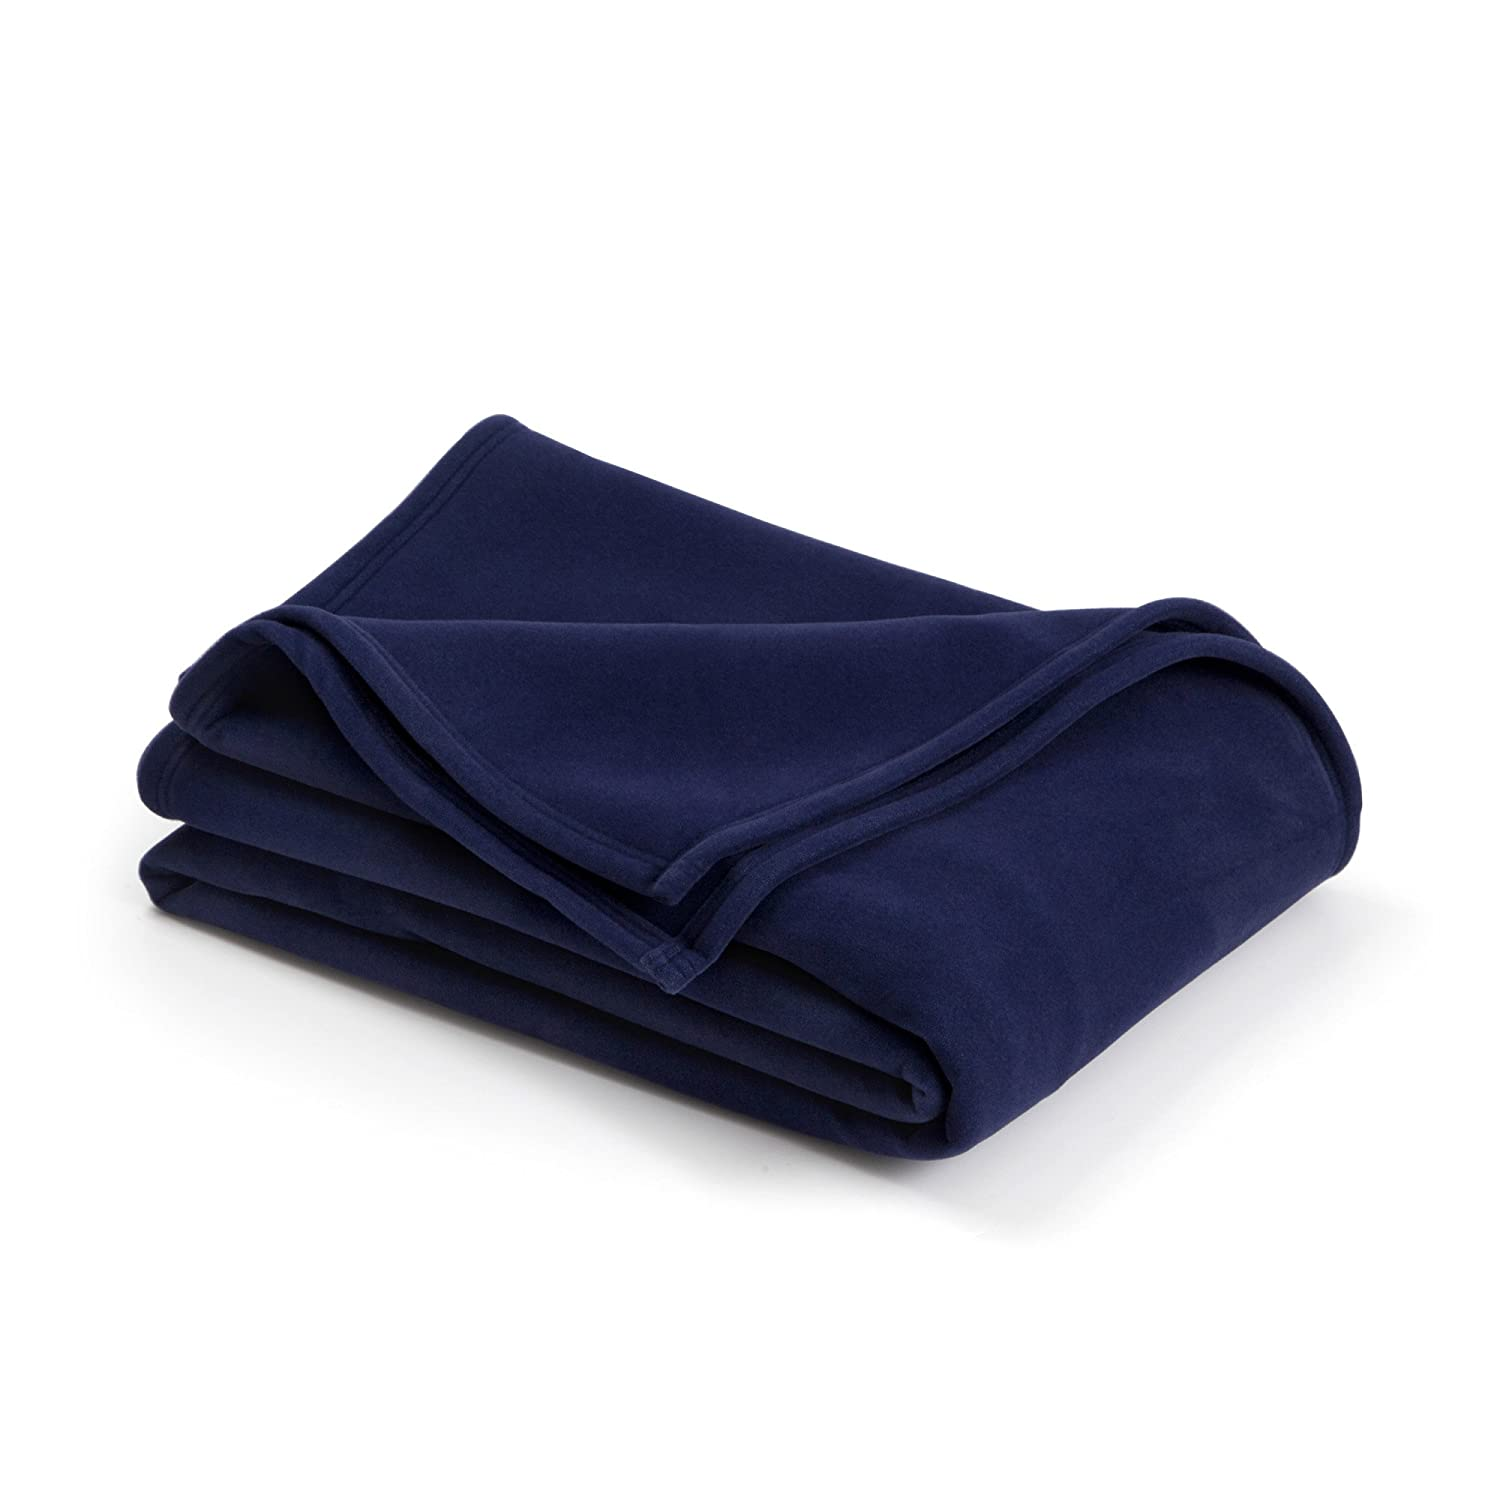 The Original Vellux Blanket - Full/Queen, Soft, Warm, Insulated, Pet-Friendly, Home Bed & Sofa - Navy